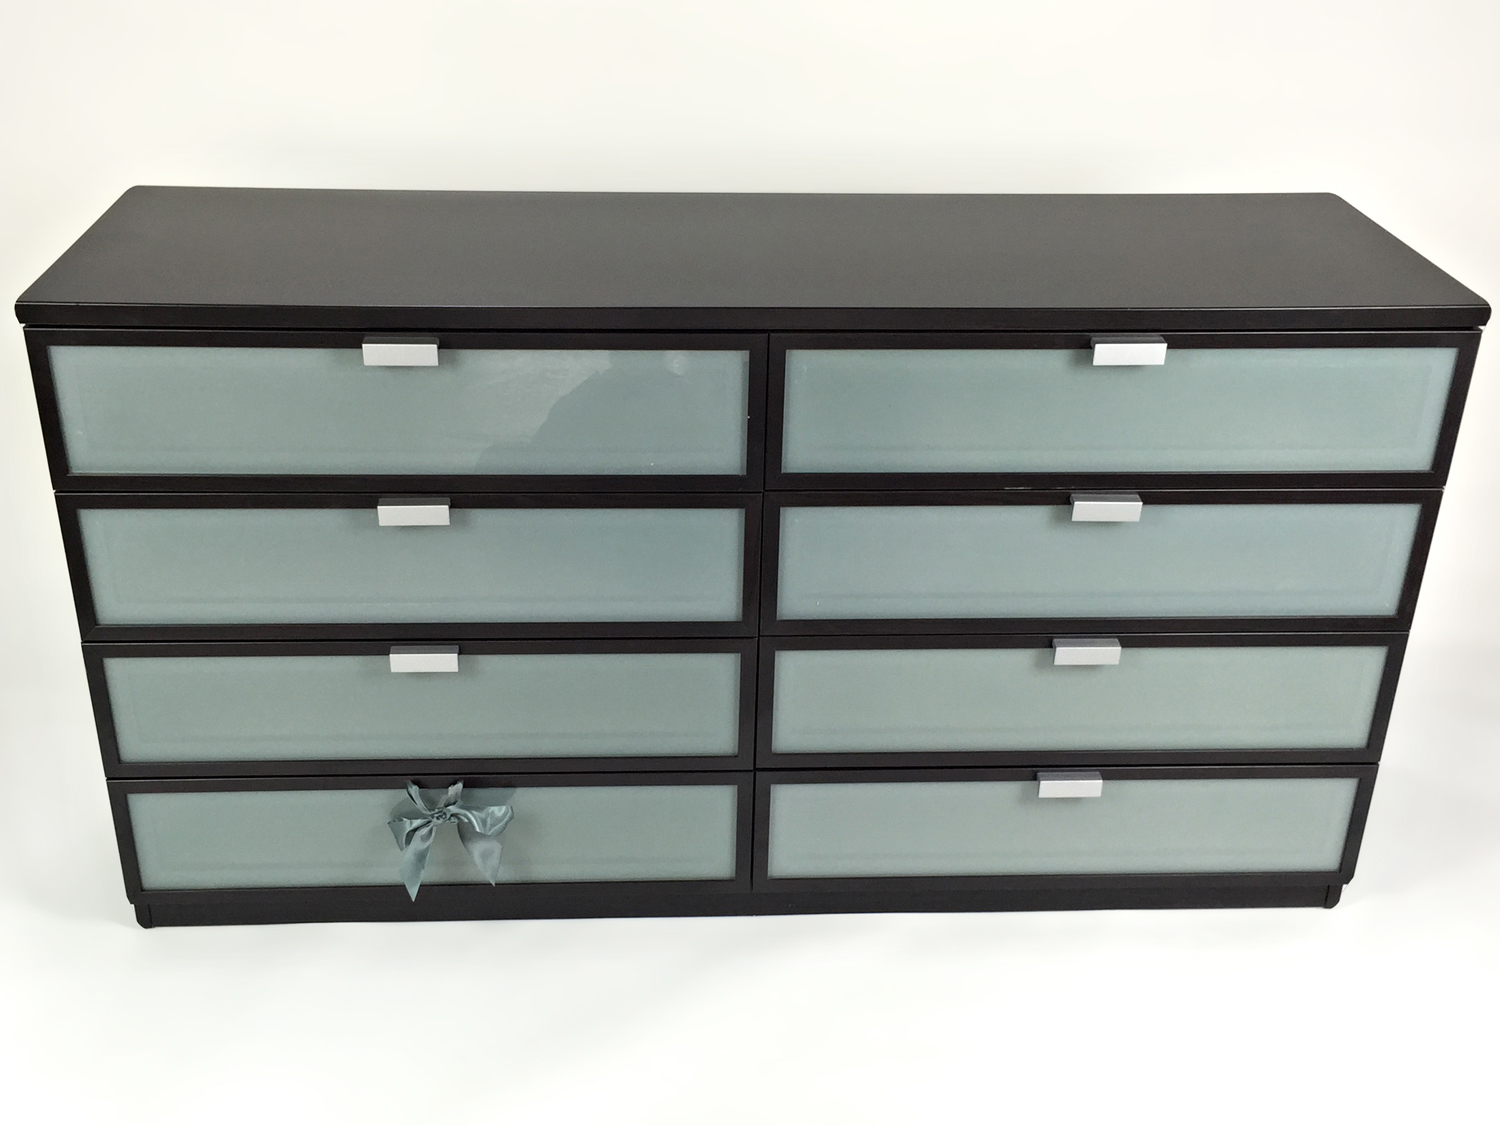 50 Off Ikea Ikea Hopen Dresser Storage